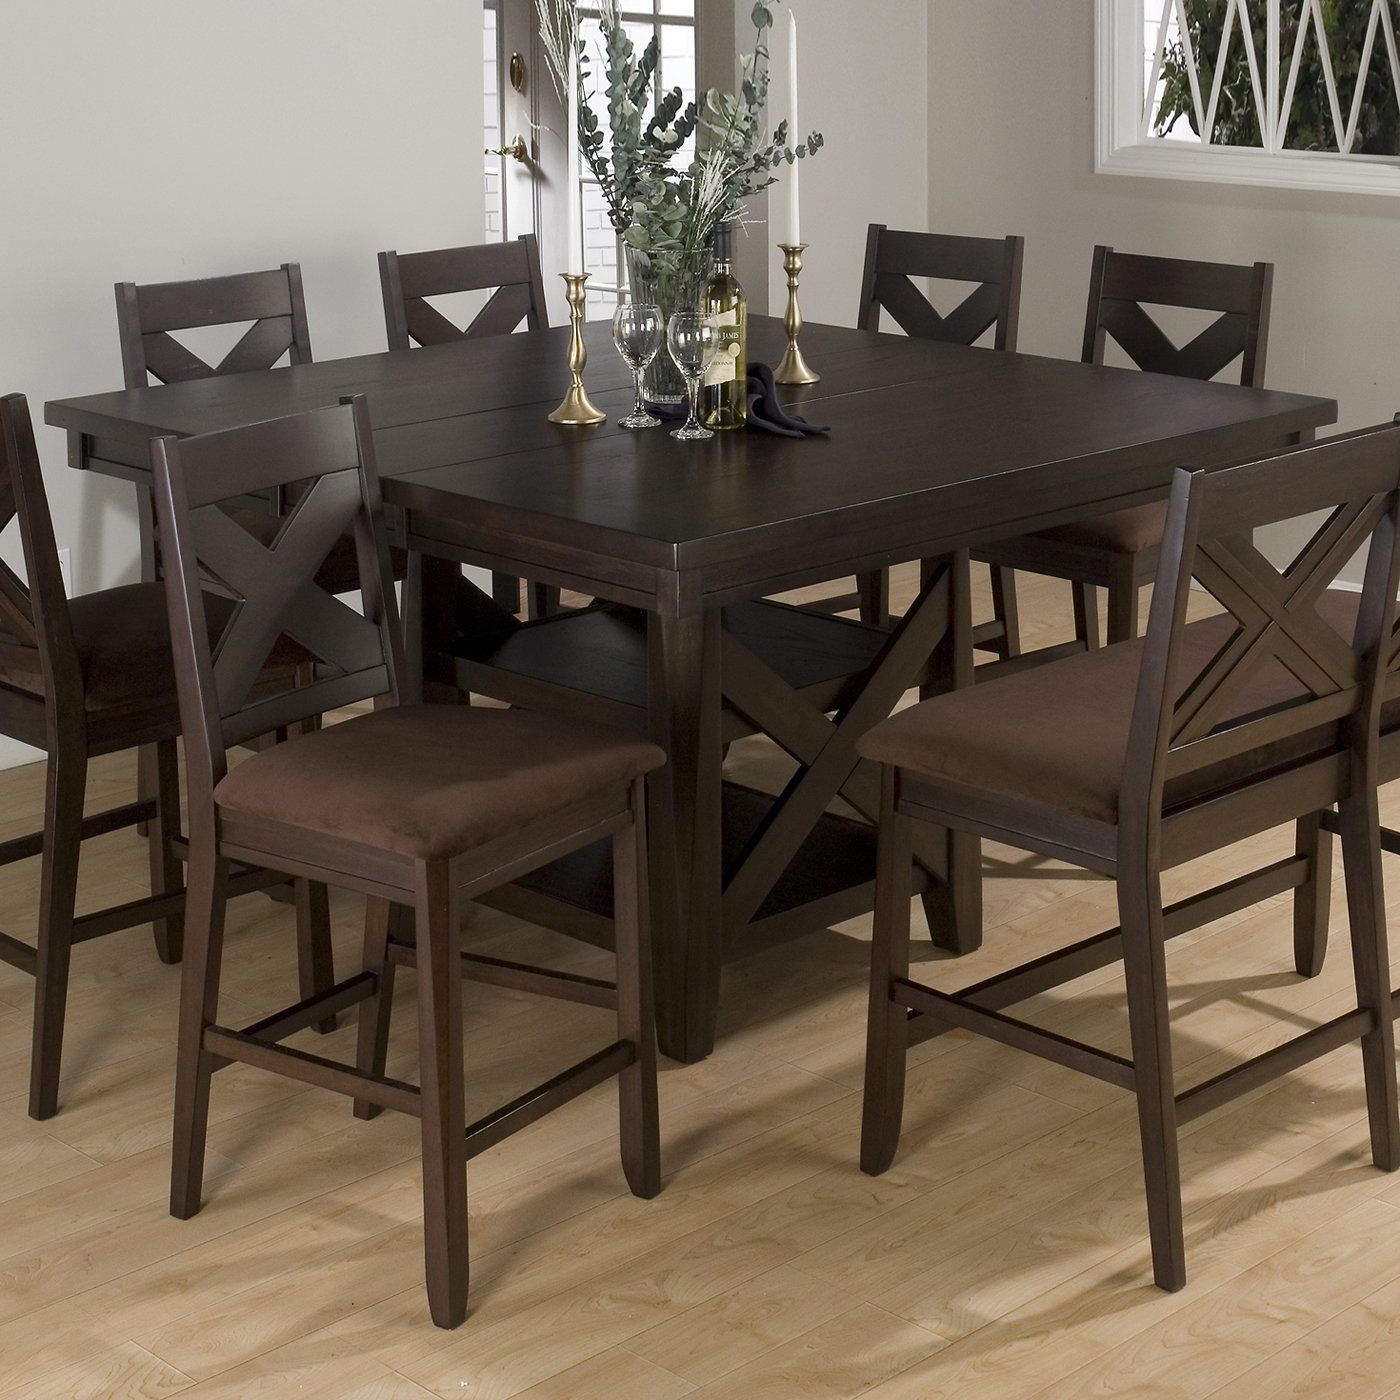 Jofran 453-60 Morgan Counter Height Dining Table | My dream Home ...